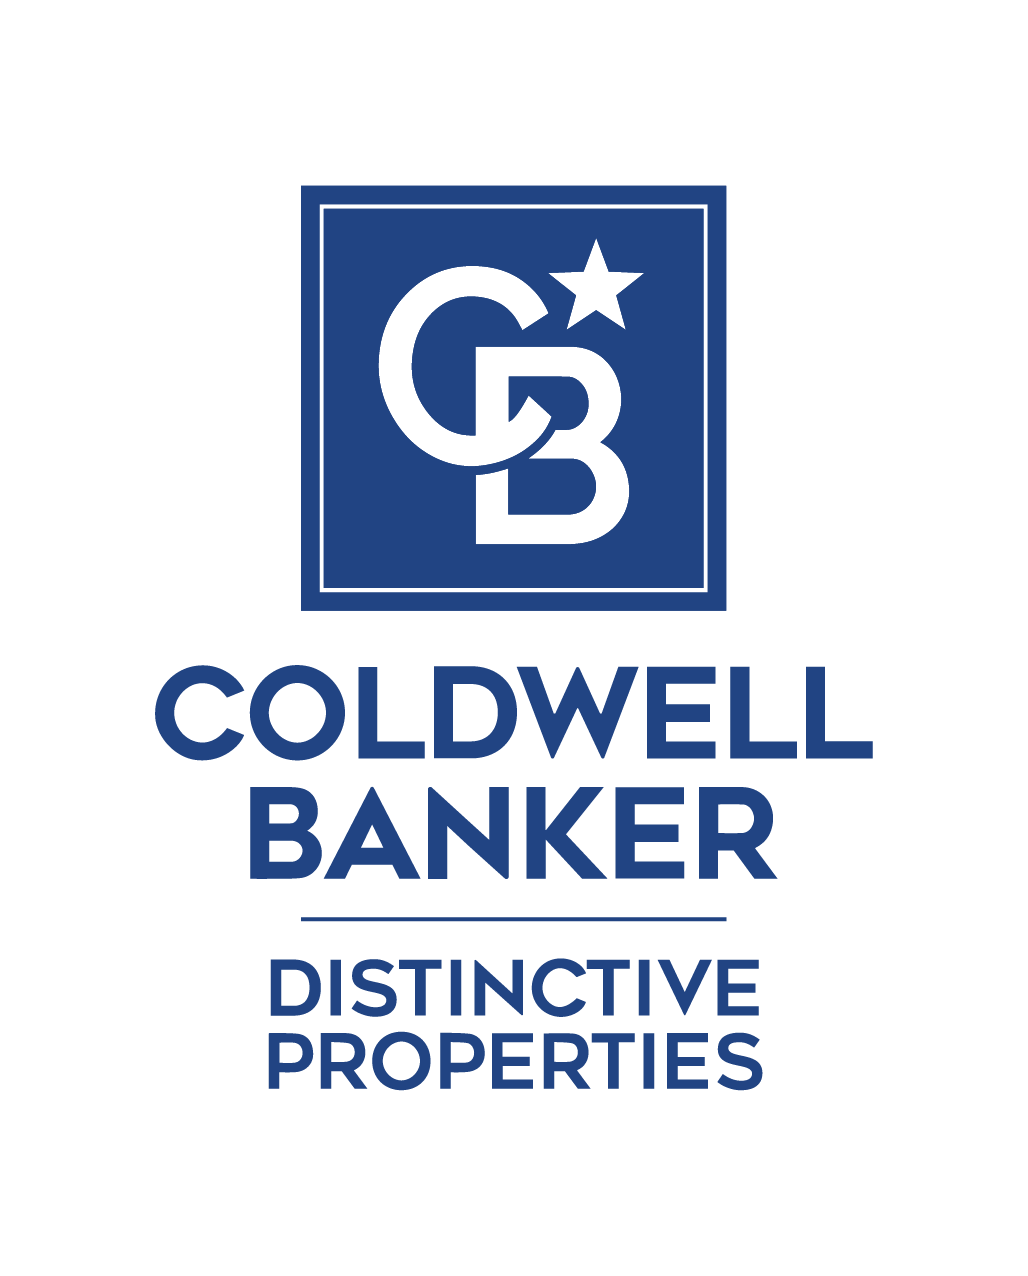 Chris Bruha - Coldwell Banker Distinctive Properties Logo